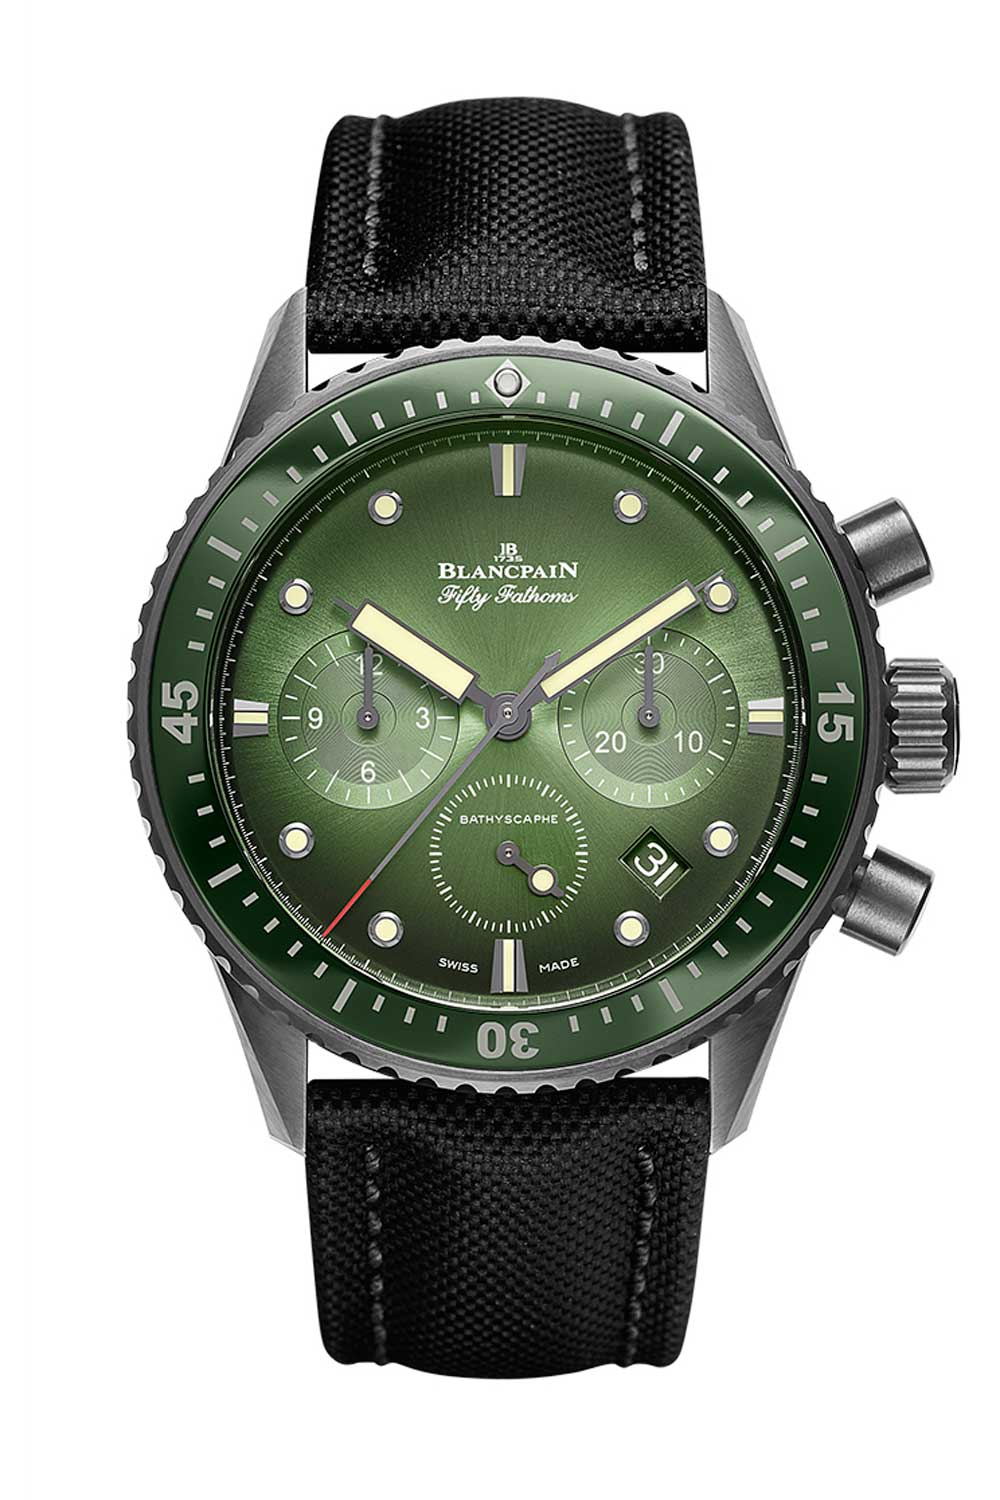 The Fifty Fathoms Bathyscaphe Chronograph Flyback (green)